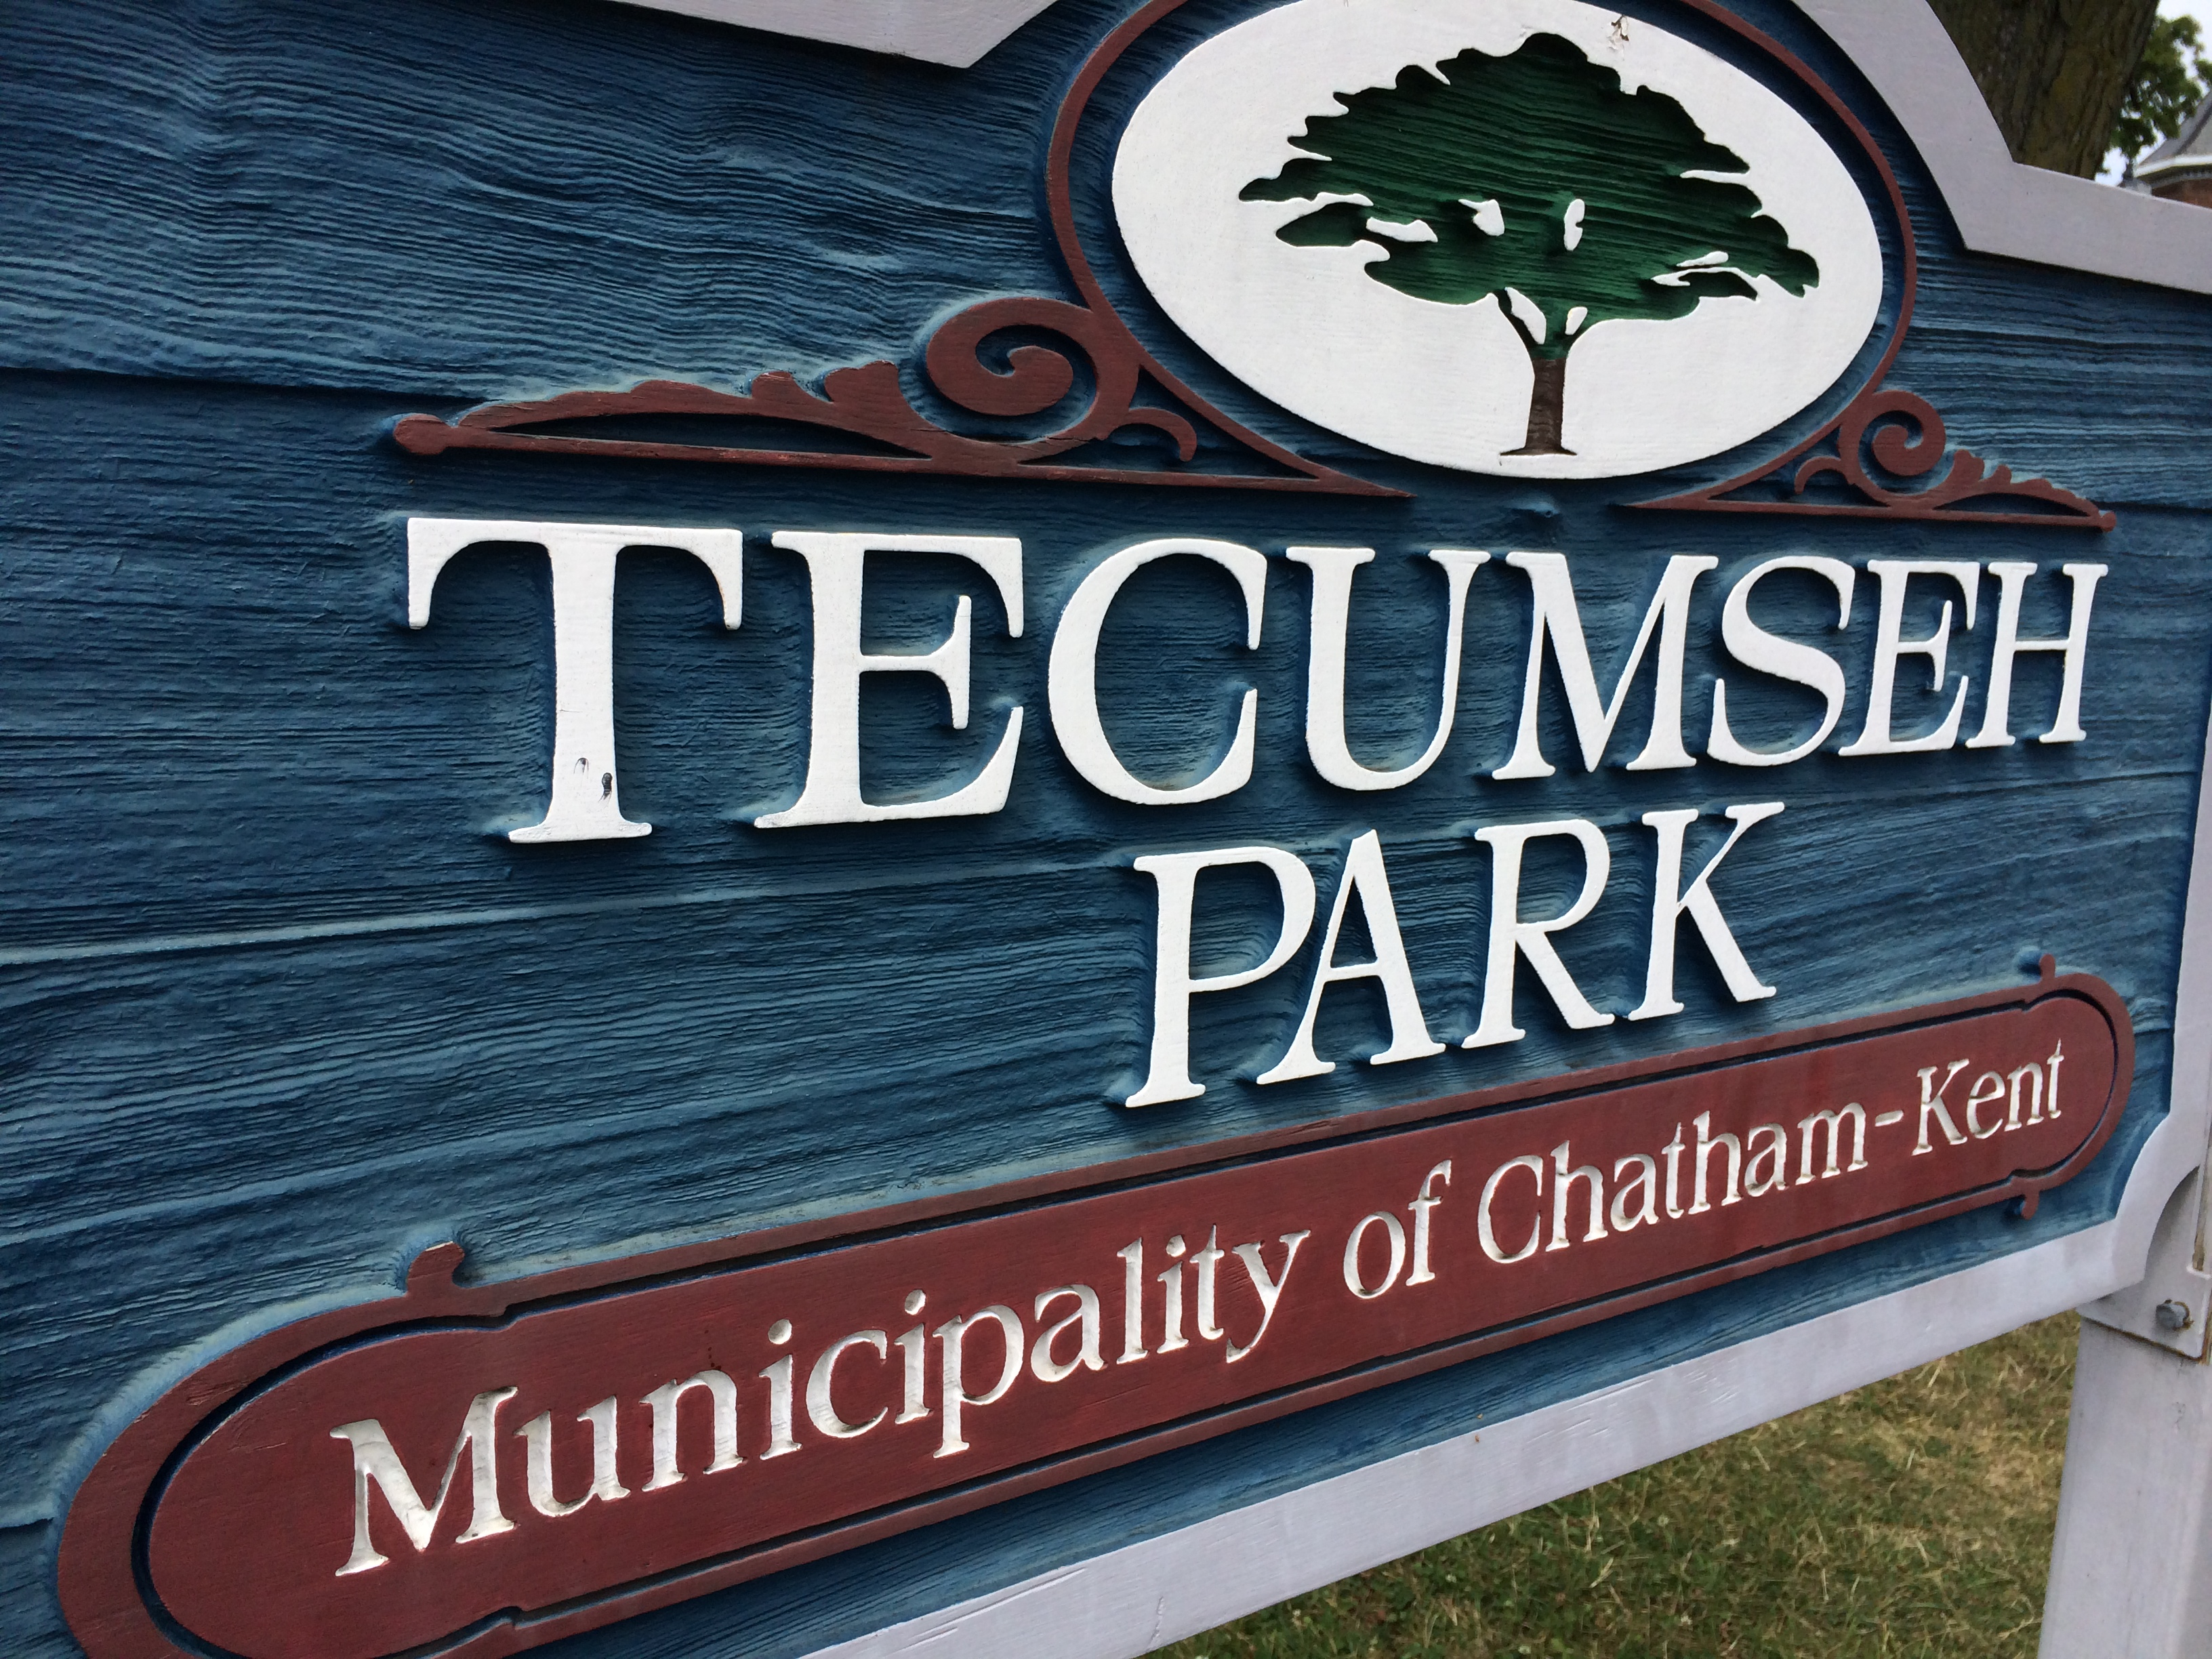 The Tecumseh Park sign on August 23, 2014. (Photo by Ricardo Veneza)